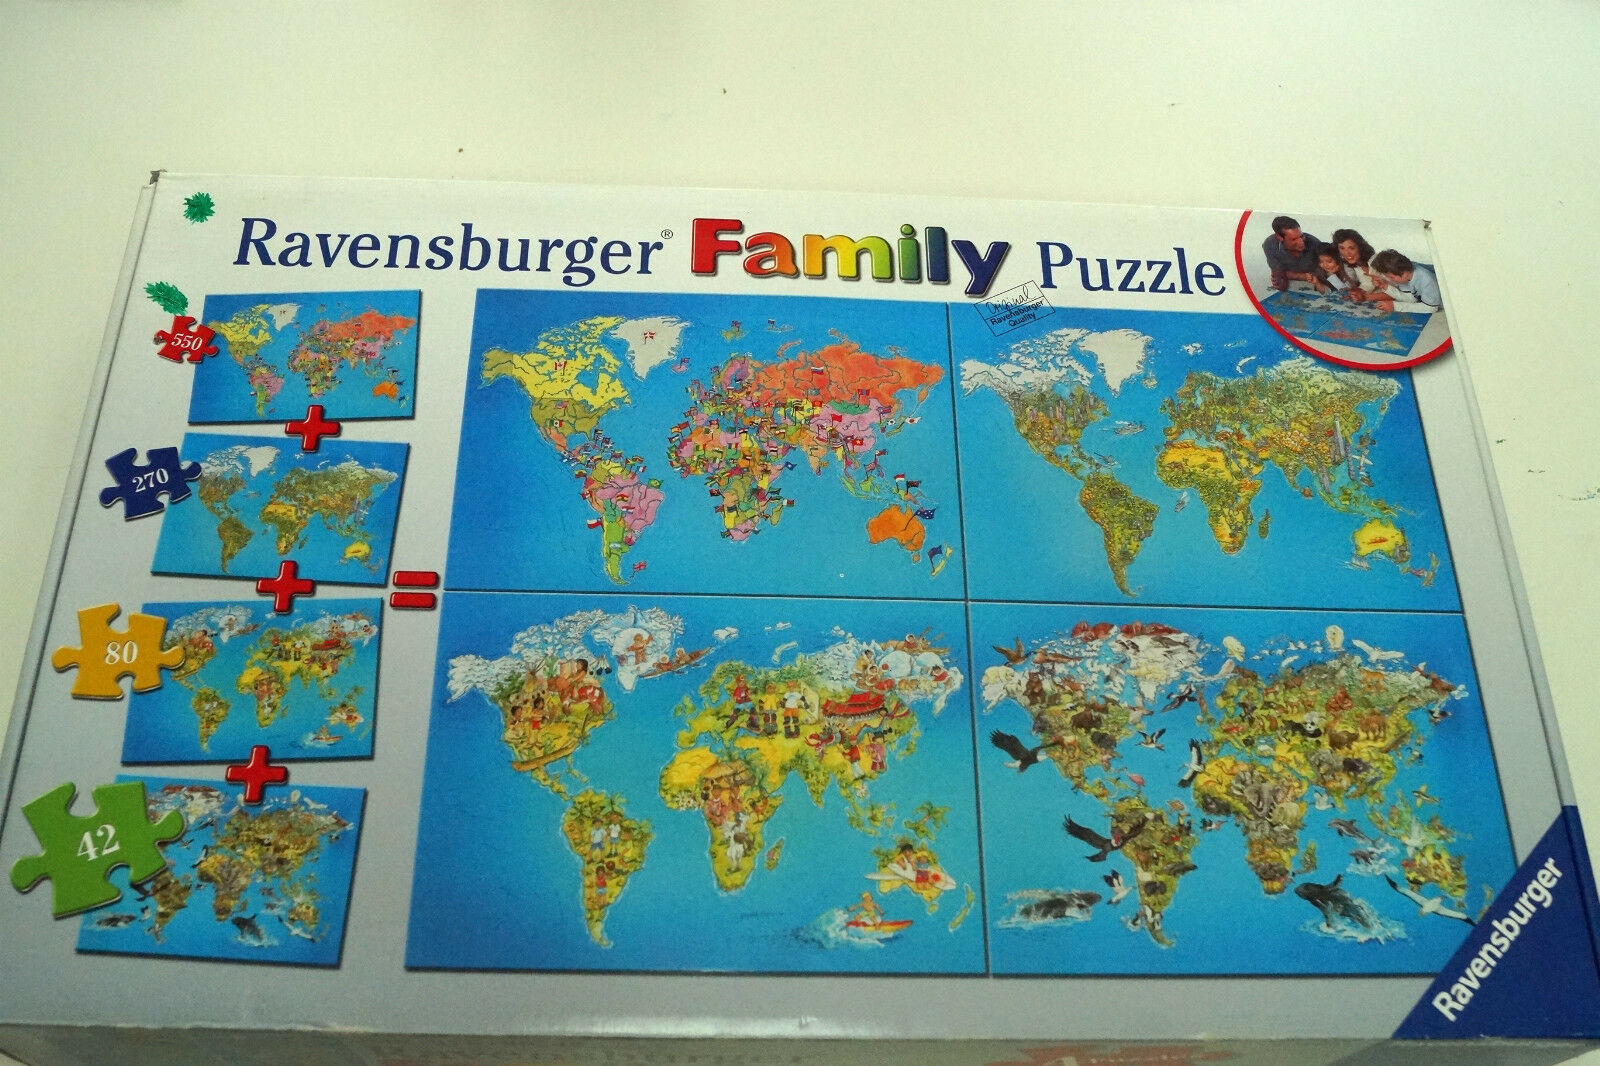 Ravensburger Family Puzzle Jigsaw World Maps 4 Puzzles  42, 80, 270, 550 Pieces